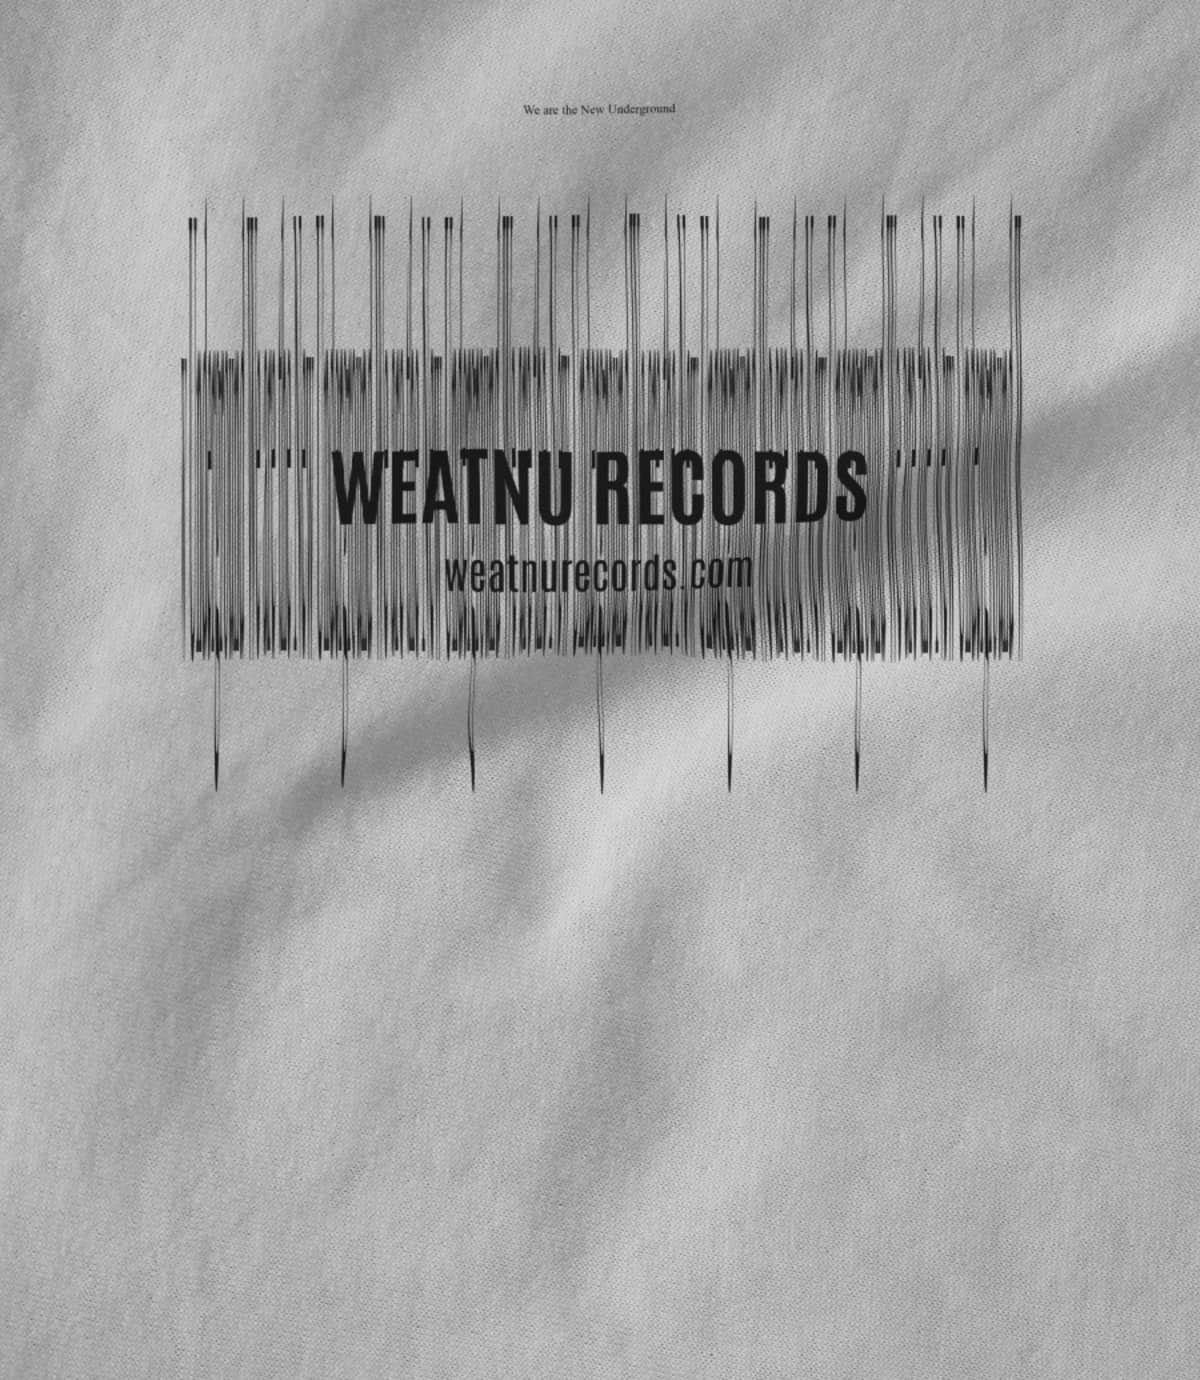 WEATNU RECORDS